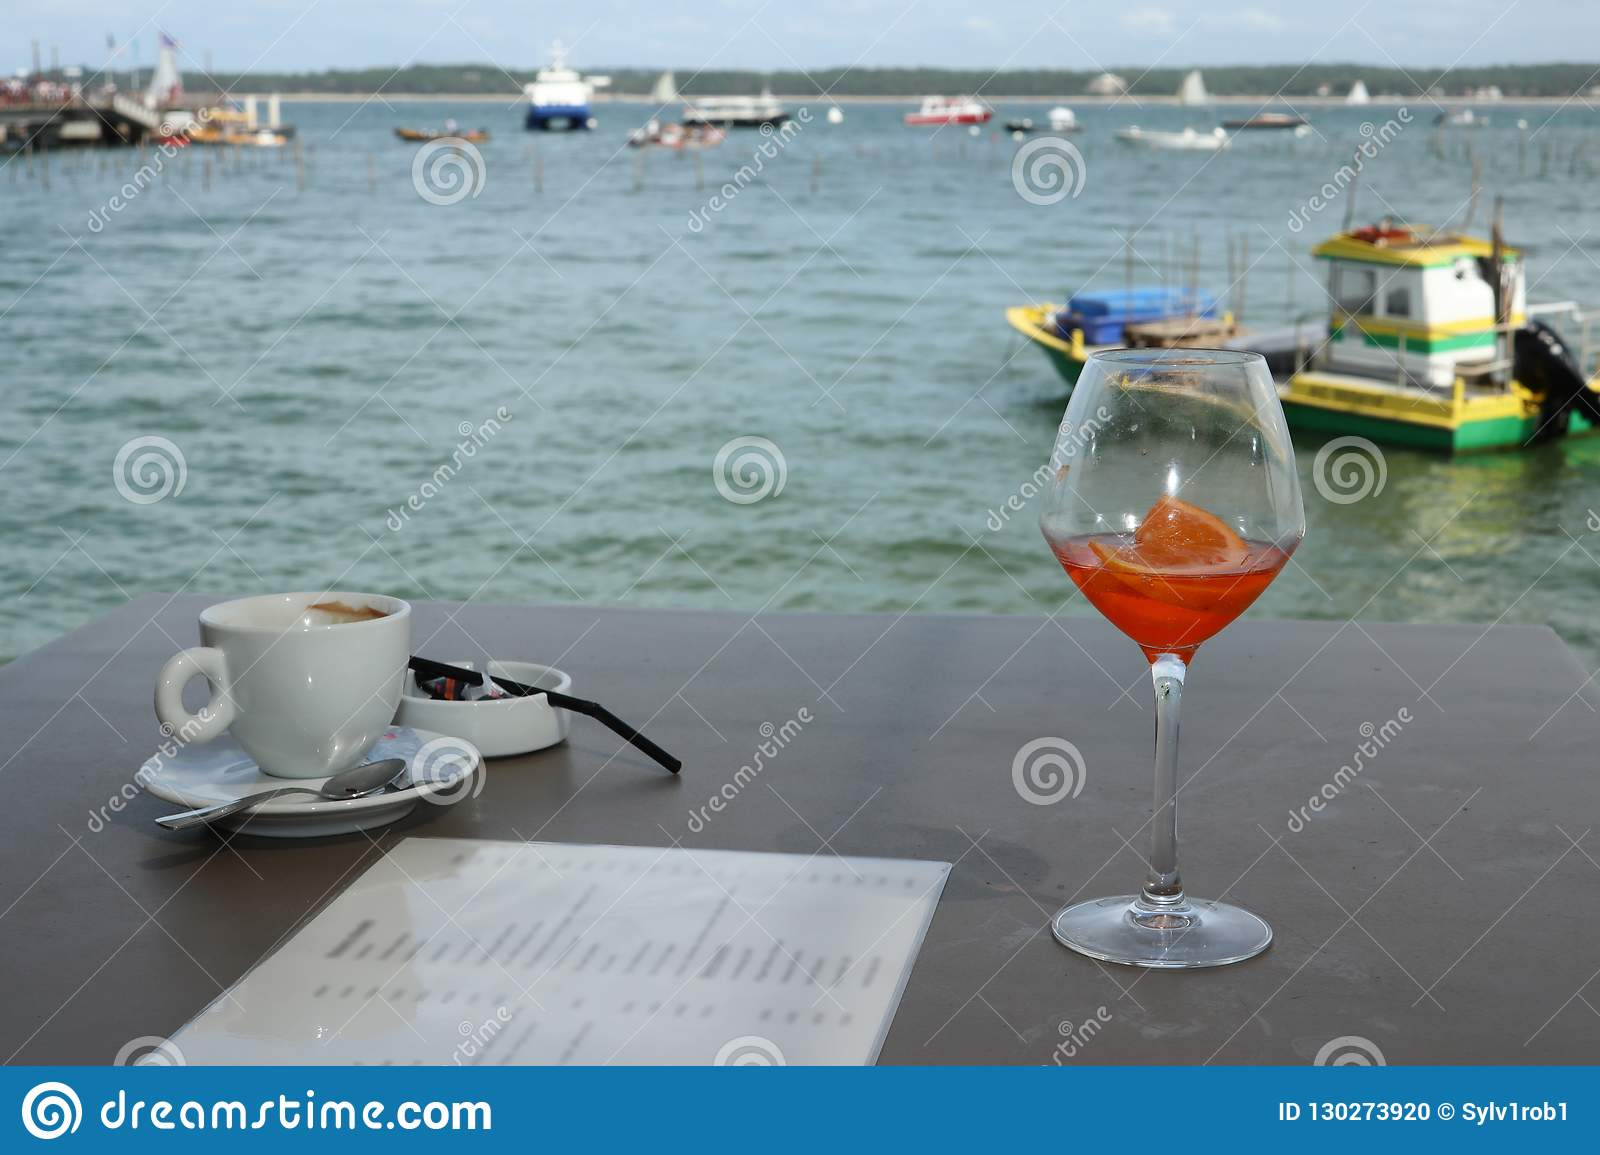 Terrace at the beach at cap ferret with a glass of wine and a coffee